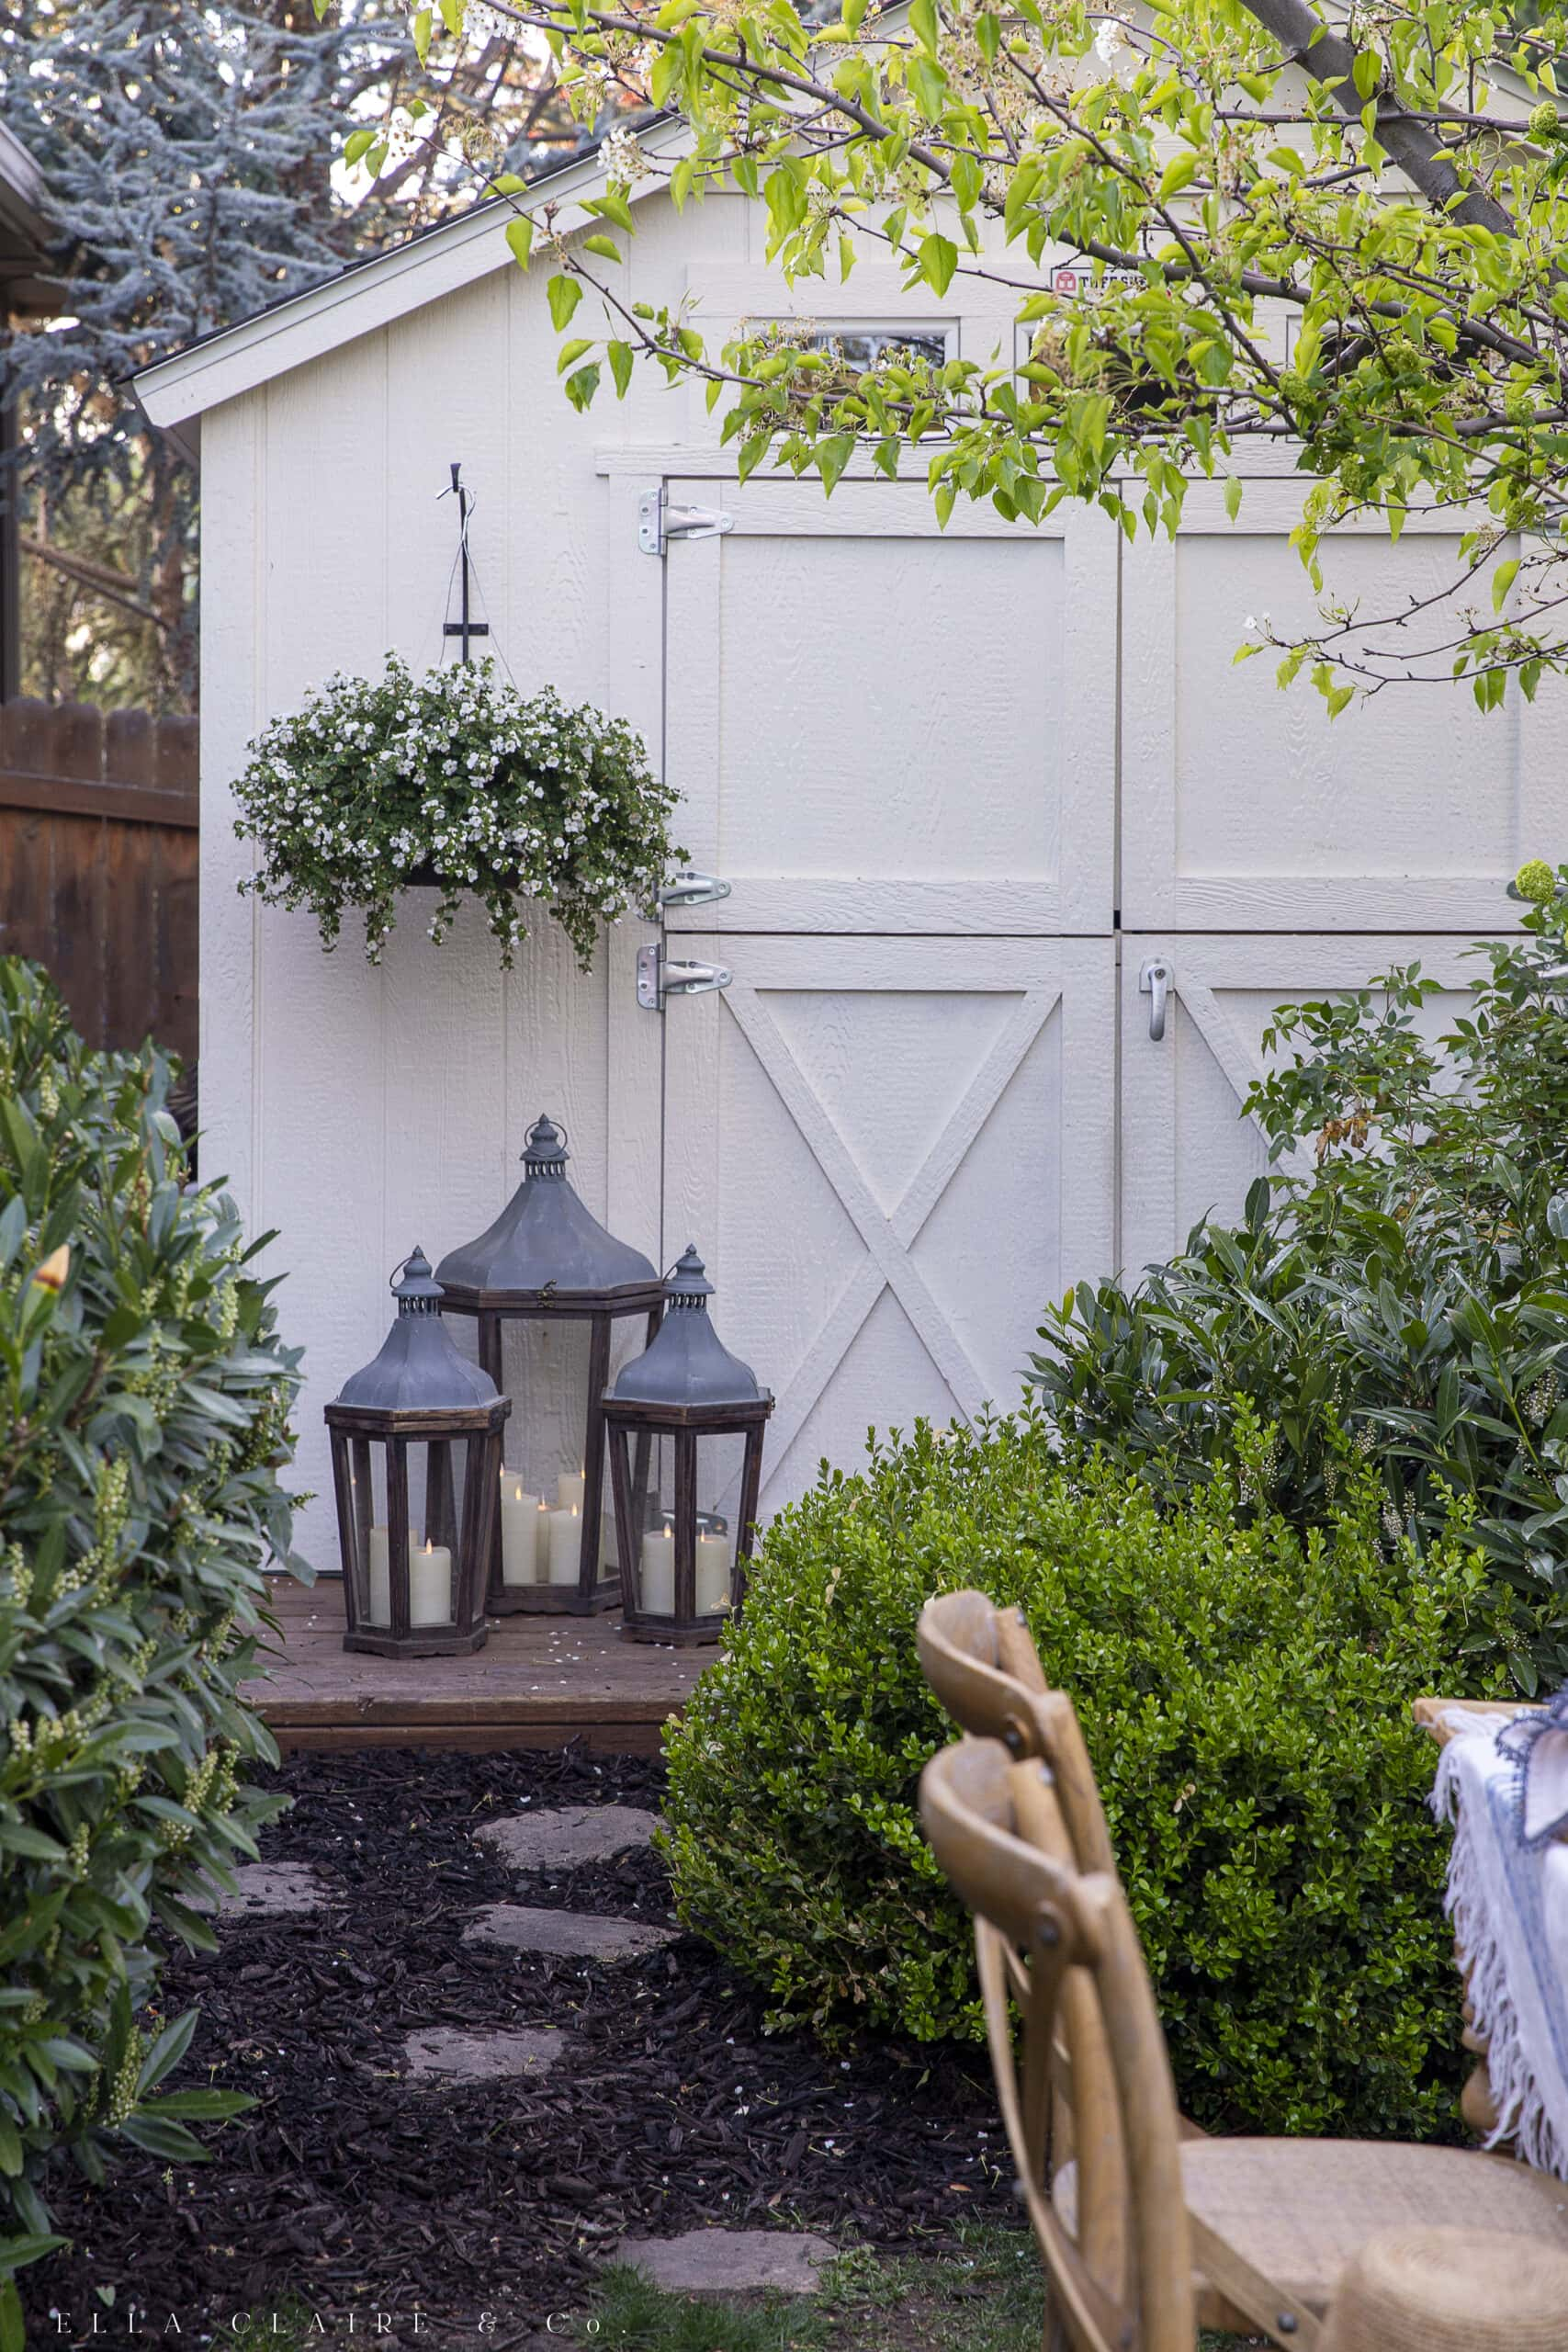 ambiance with lanterns and spring candles for backyard entertaining